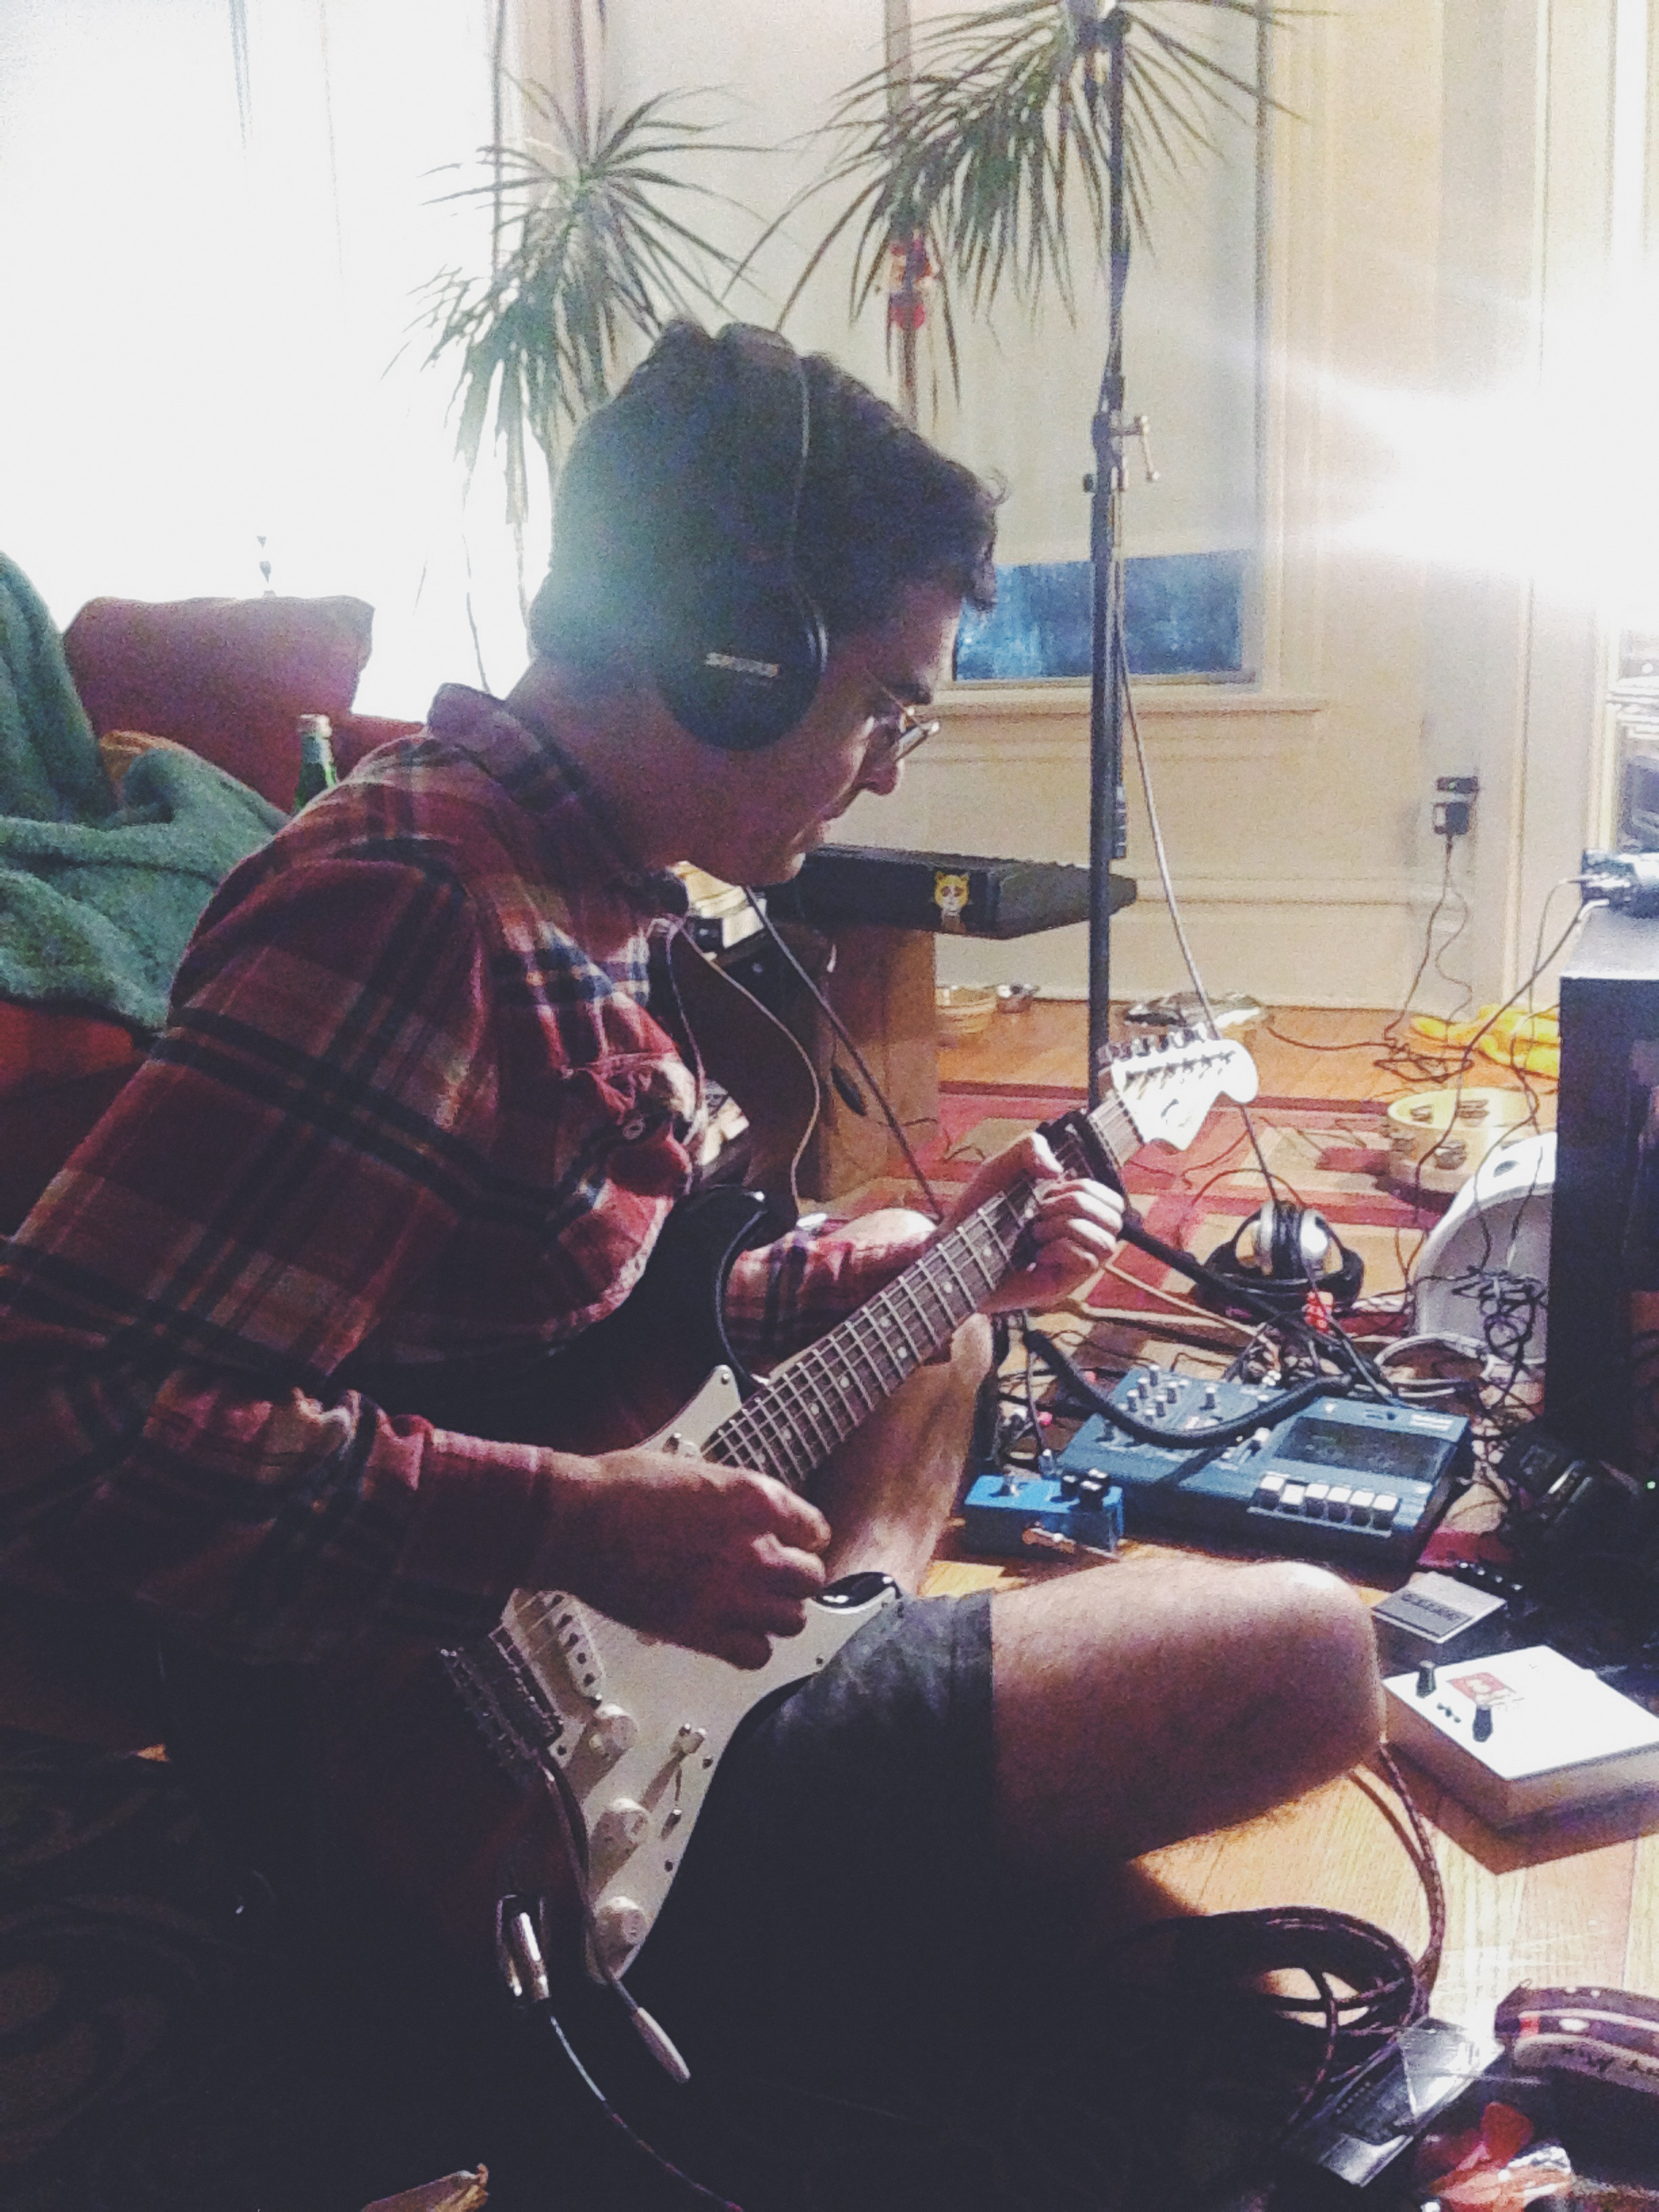 Brian recording a Pet Theories demo